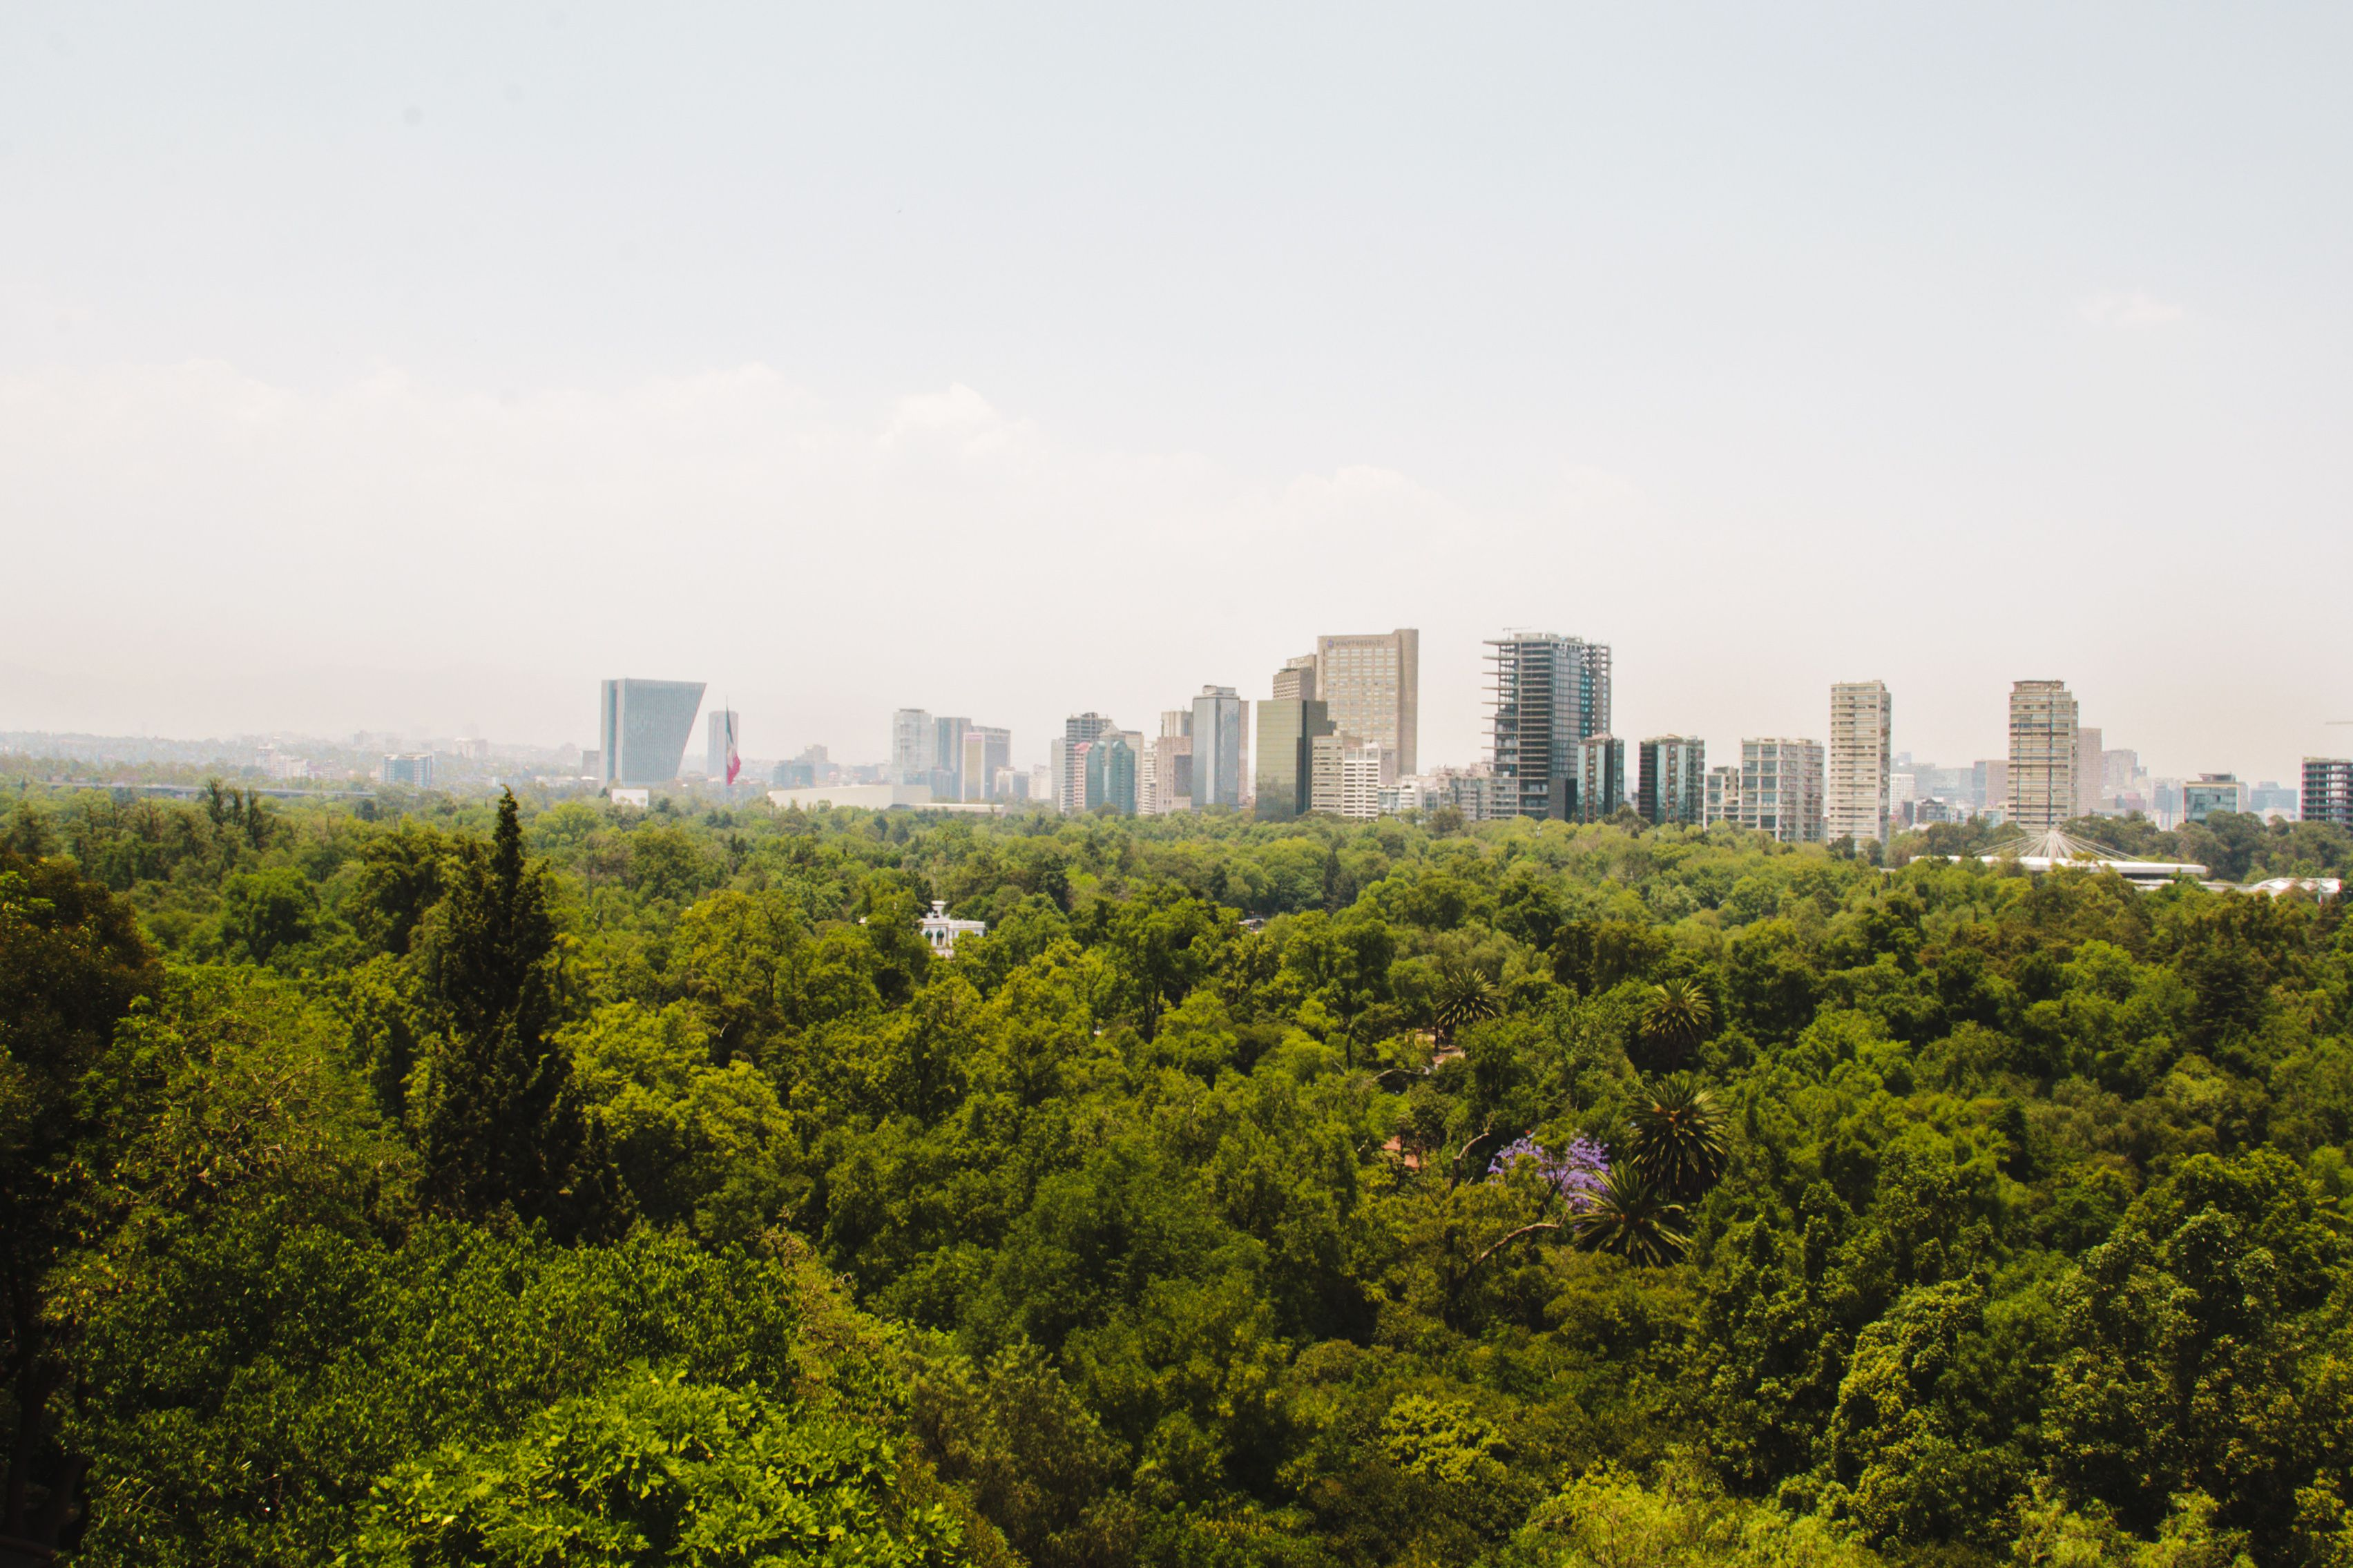 Chapultepec Park with the mexico city skyline in the background